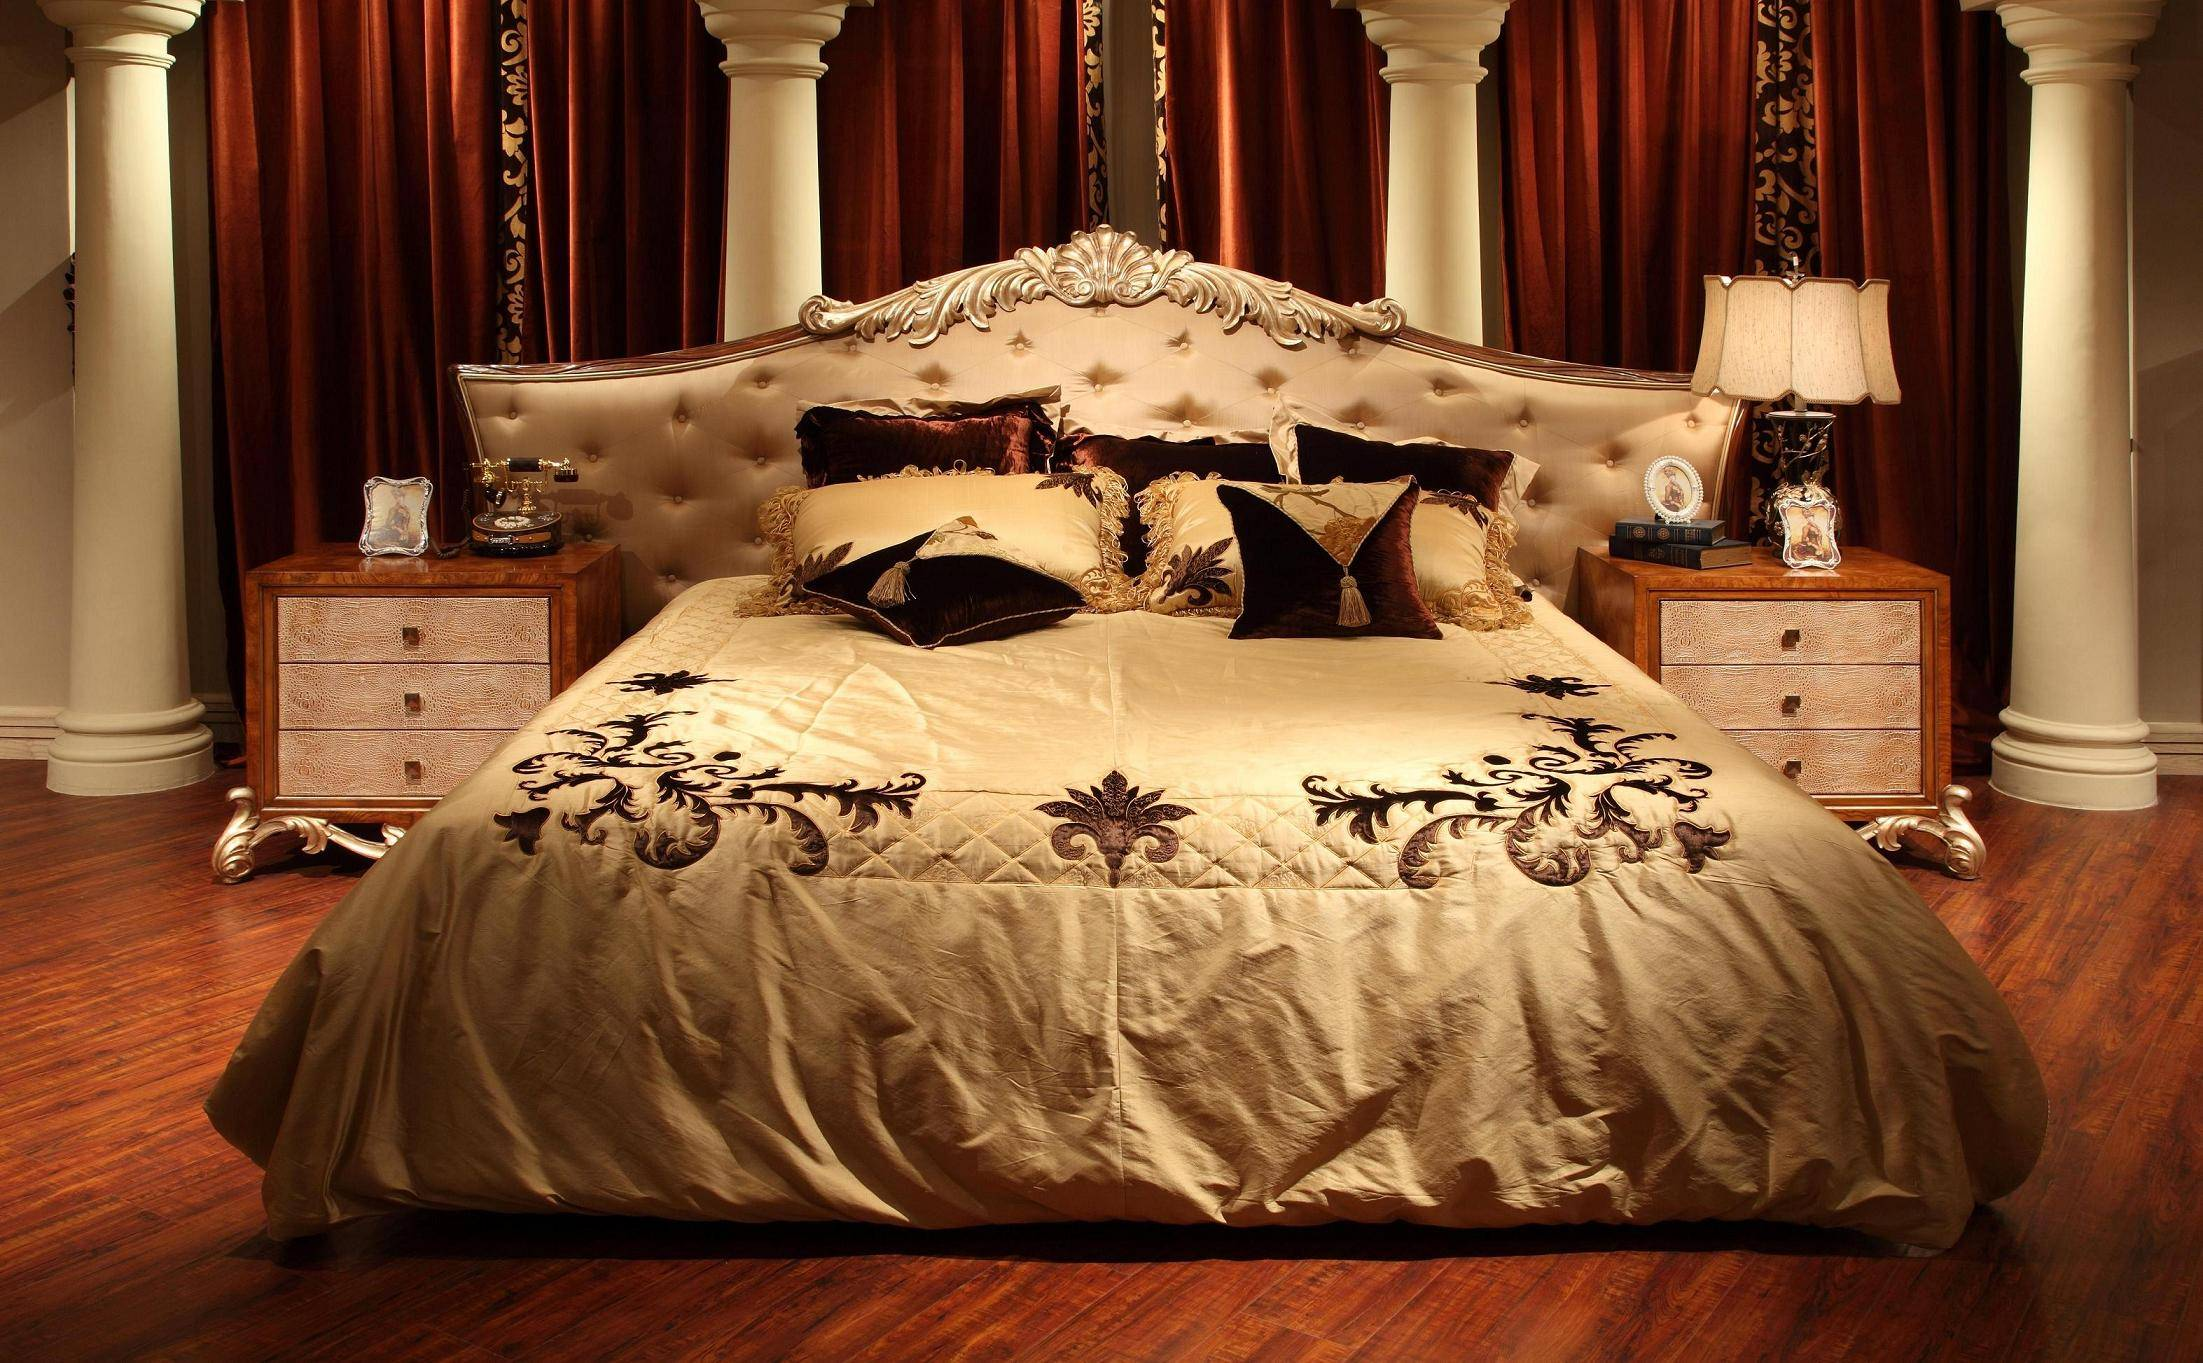 You are not authorized to view this page for Luxury bedroom furniture